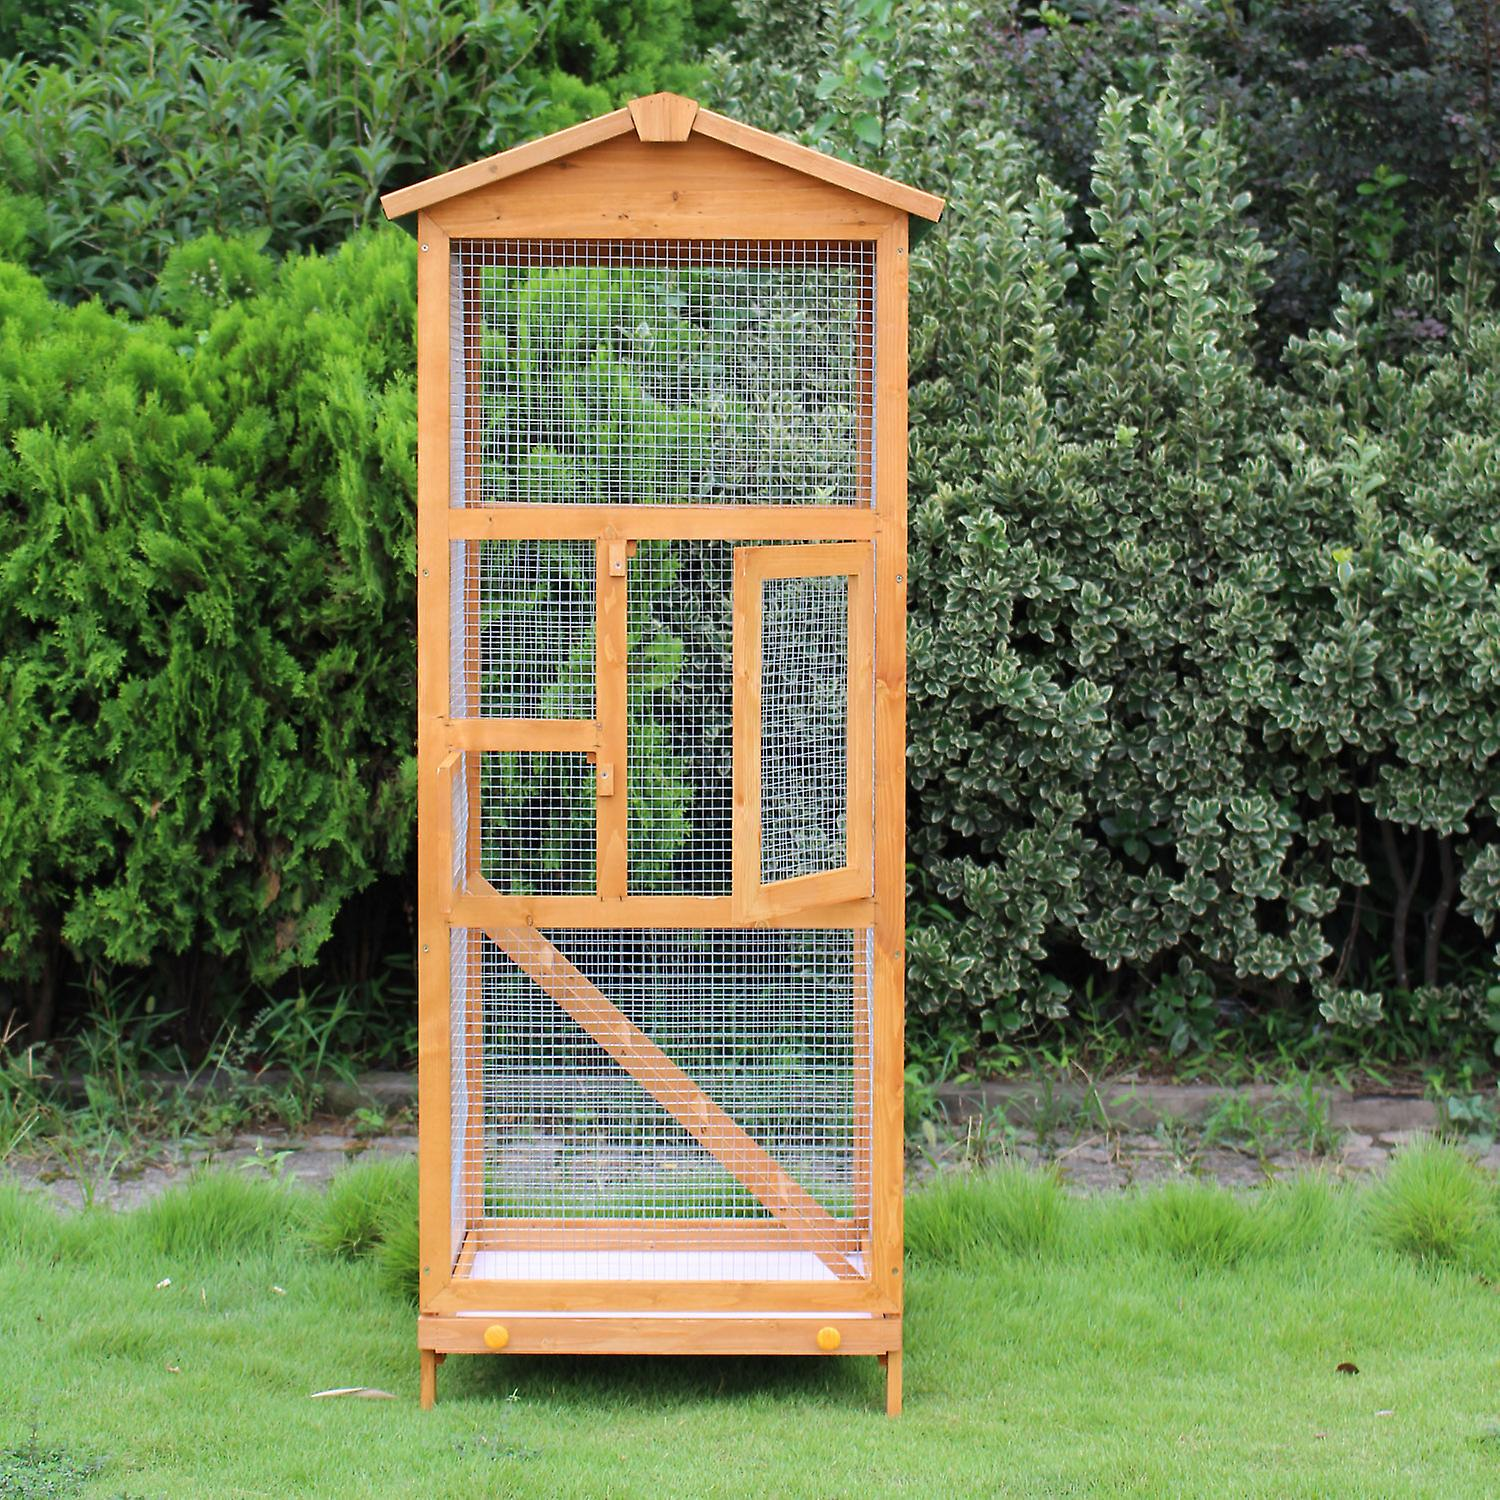 PawHut Wooden Bird Cage Birds Parrot Playing Zone Budgie Canary Parakeet Aviary House New